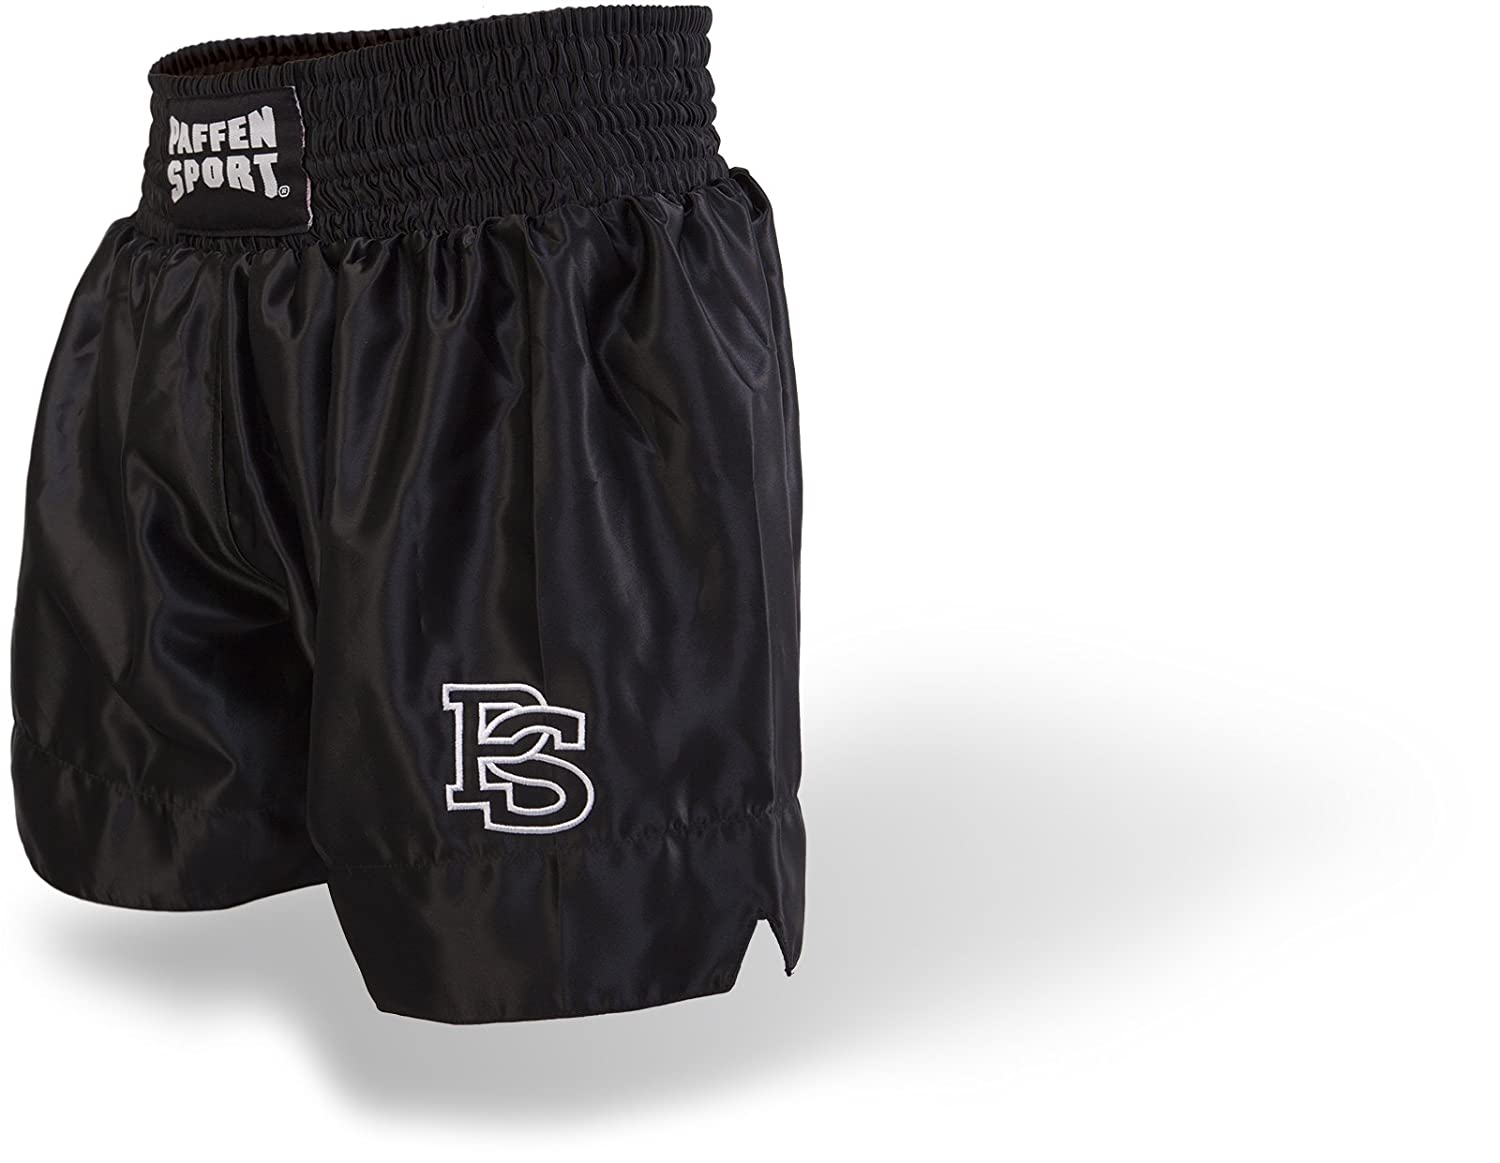 Paffen Sport THAI Trainingsshort